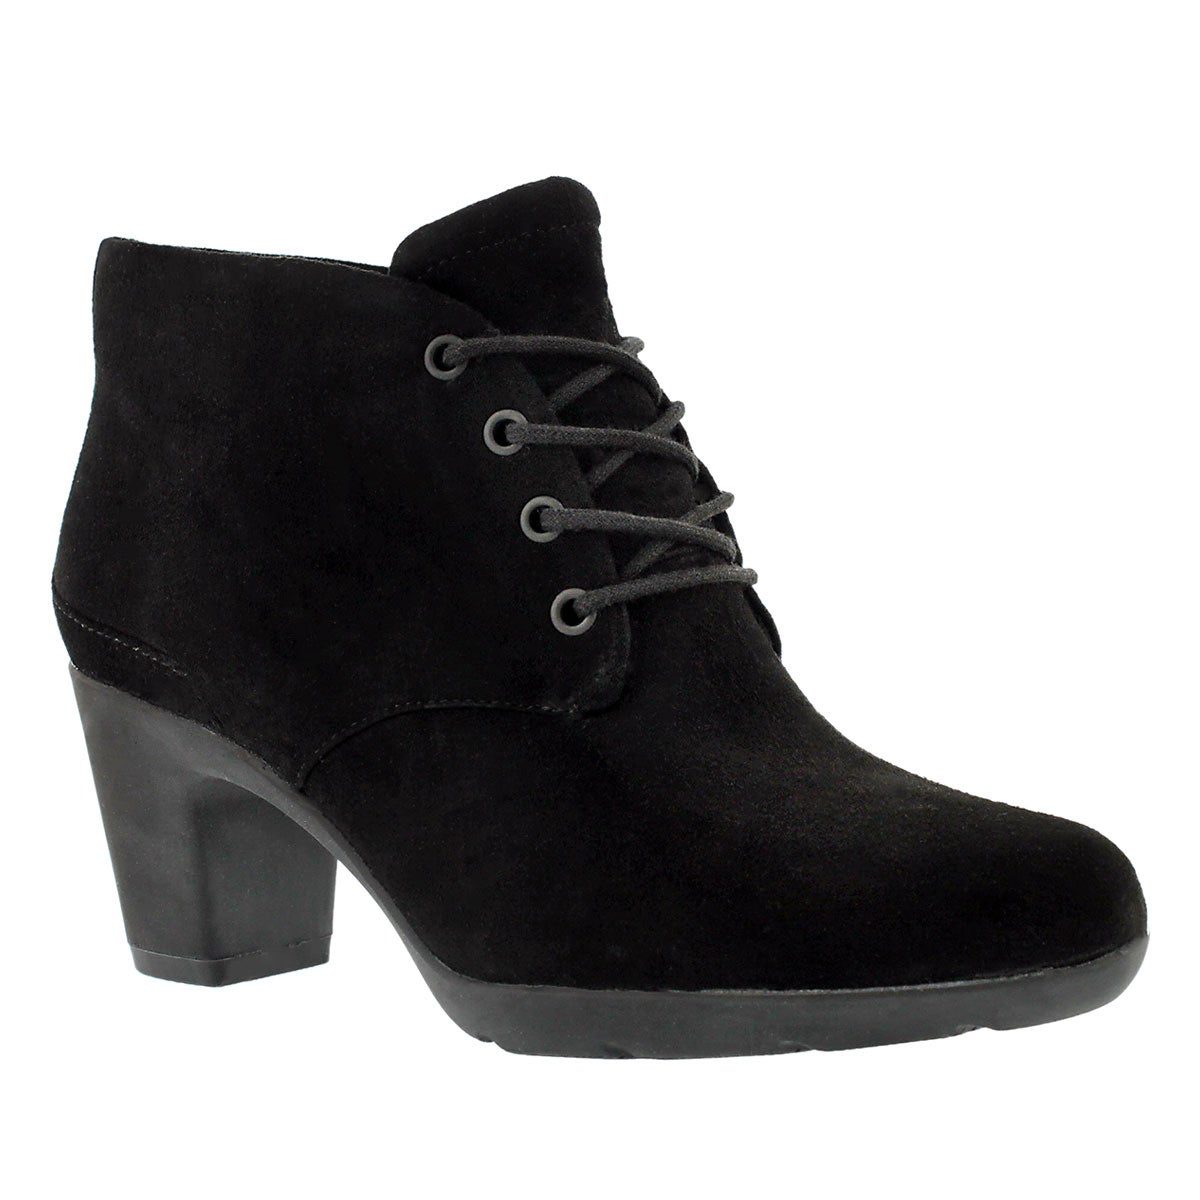 Women's LUCETTE DRAMA black suede dress booties